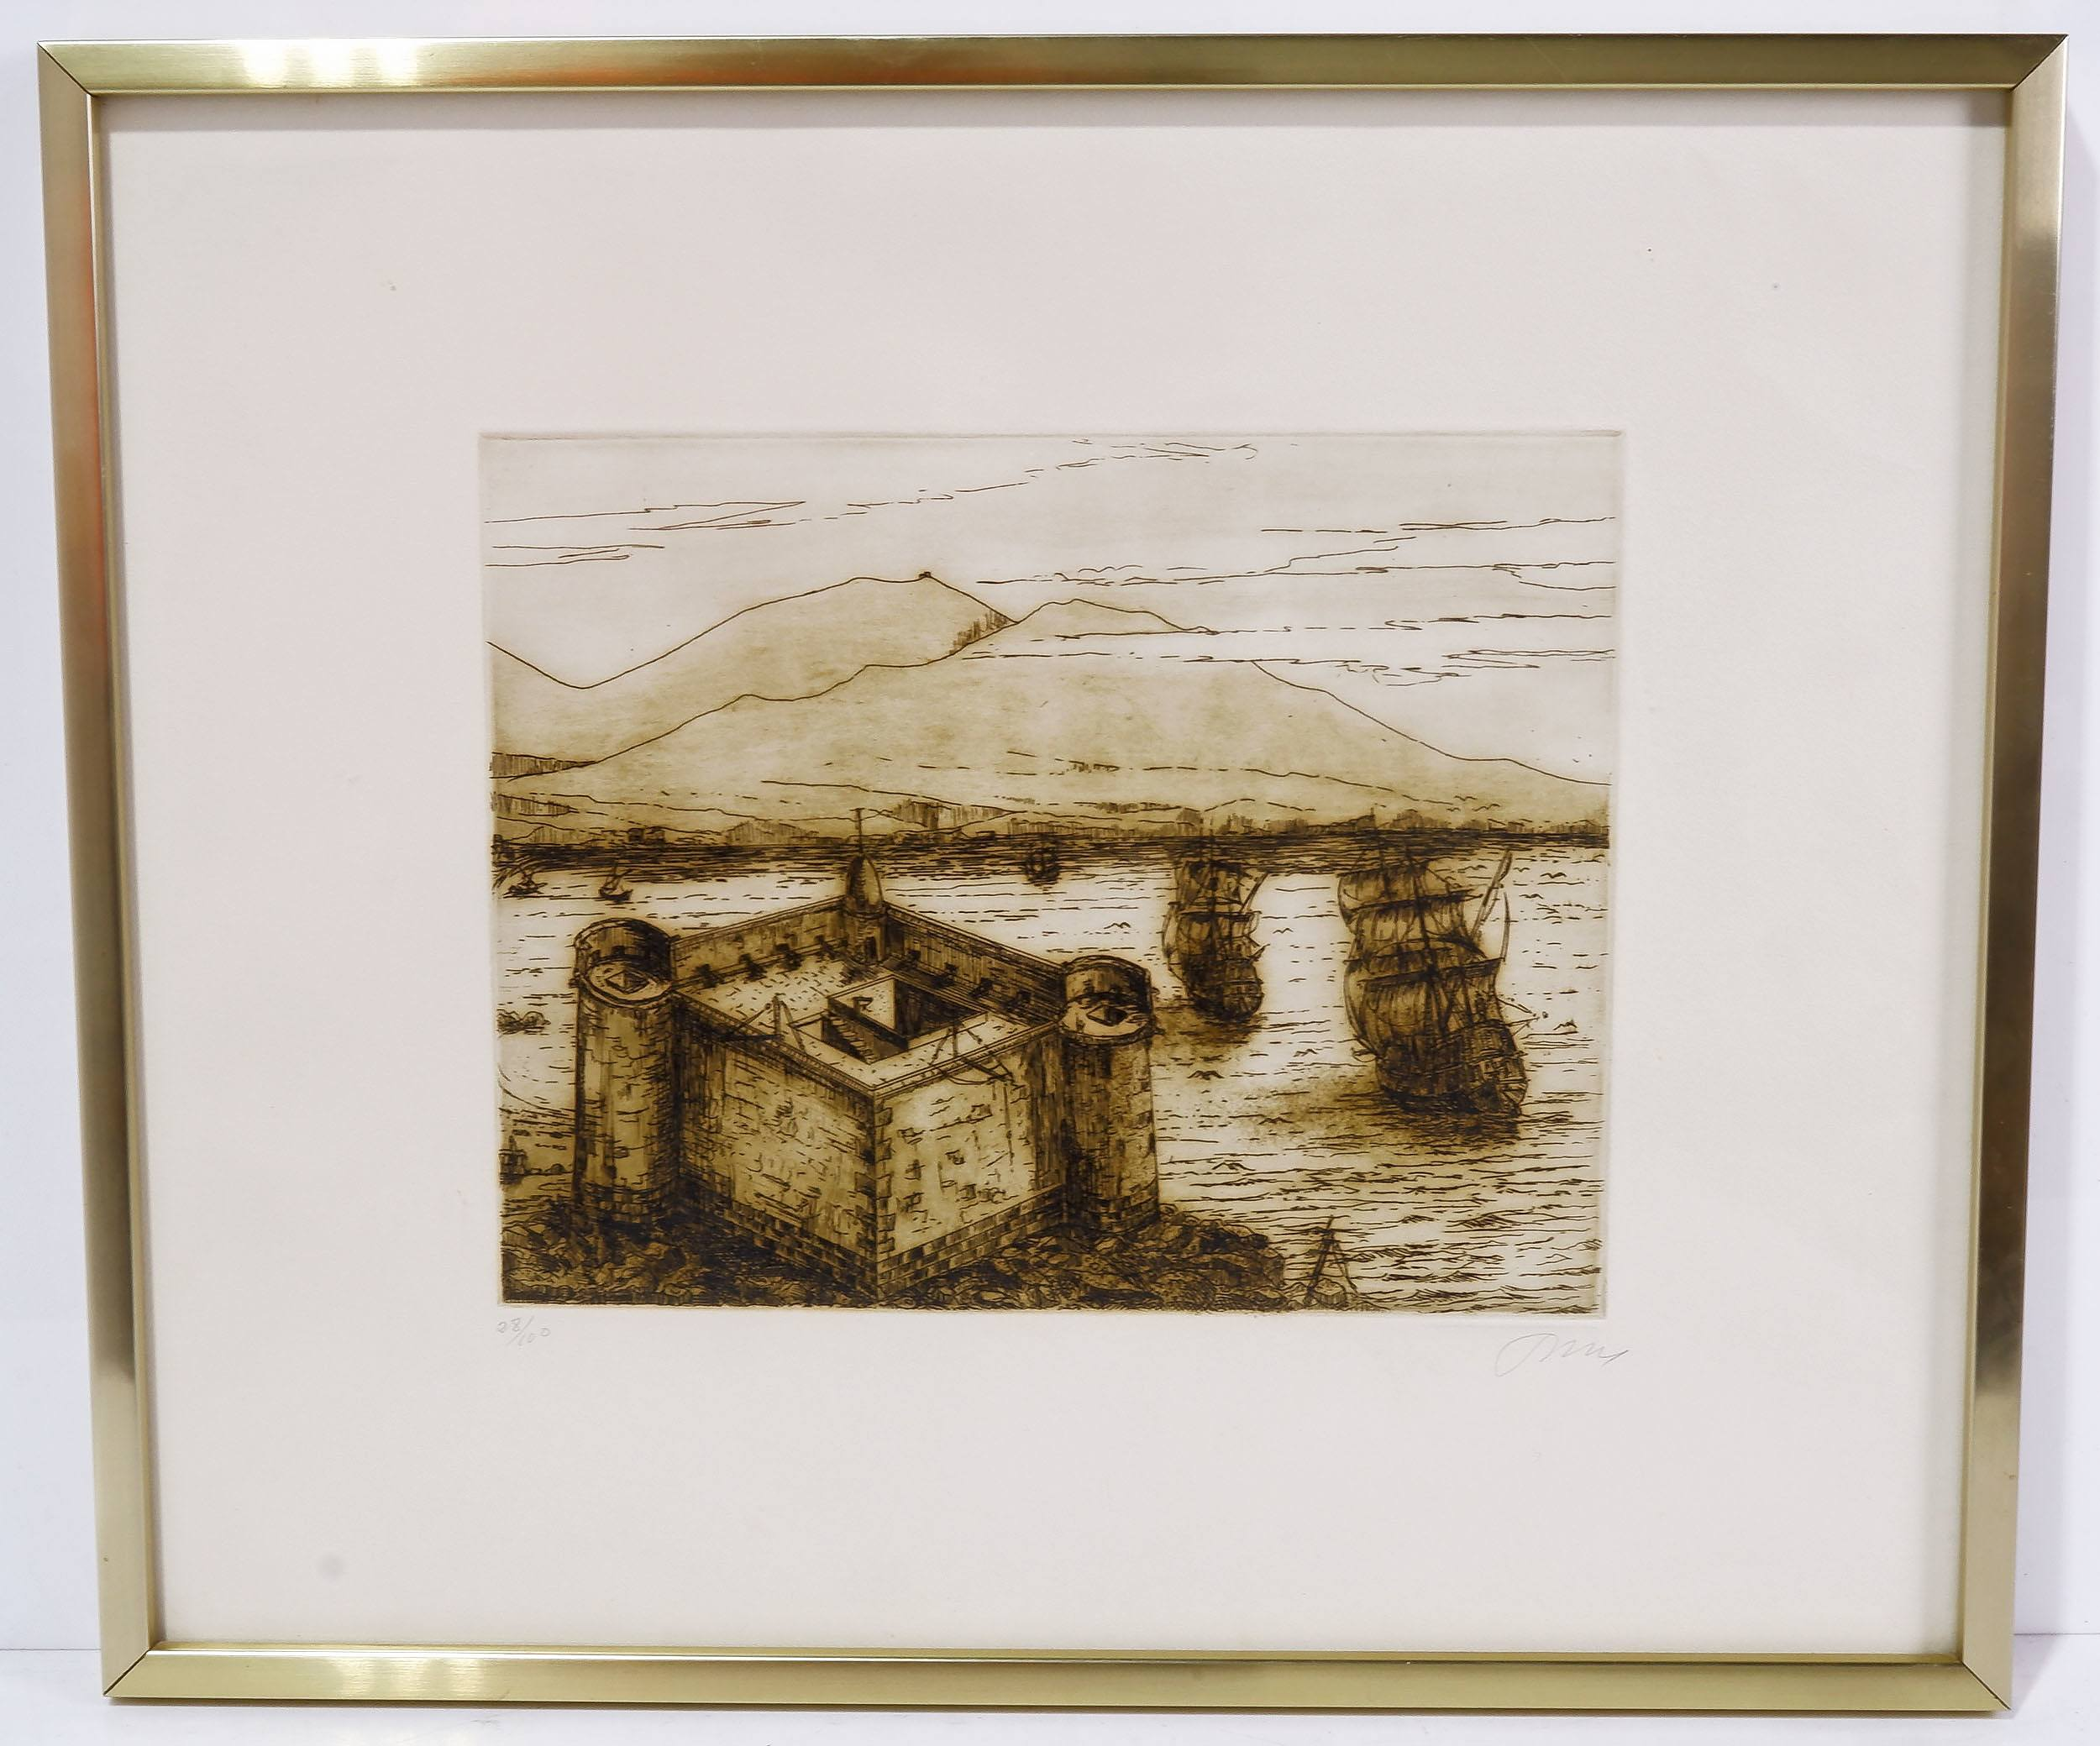 'Sepia Tint Etching of Puerto De La Luz Spain, Artist Unknown'